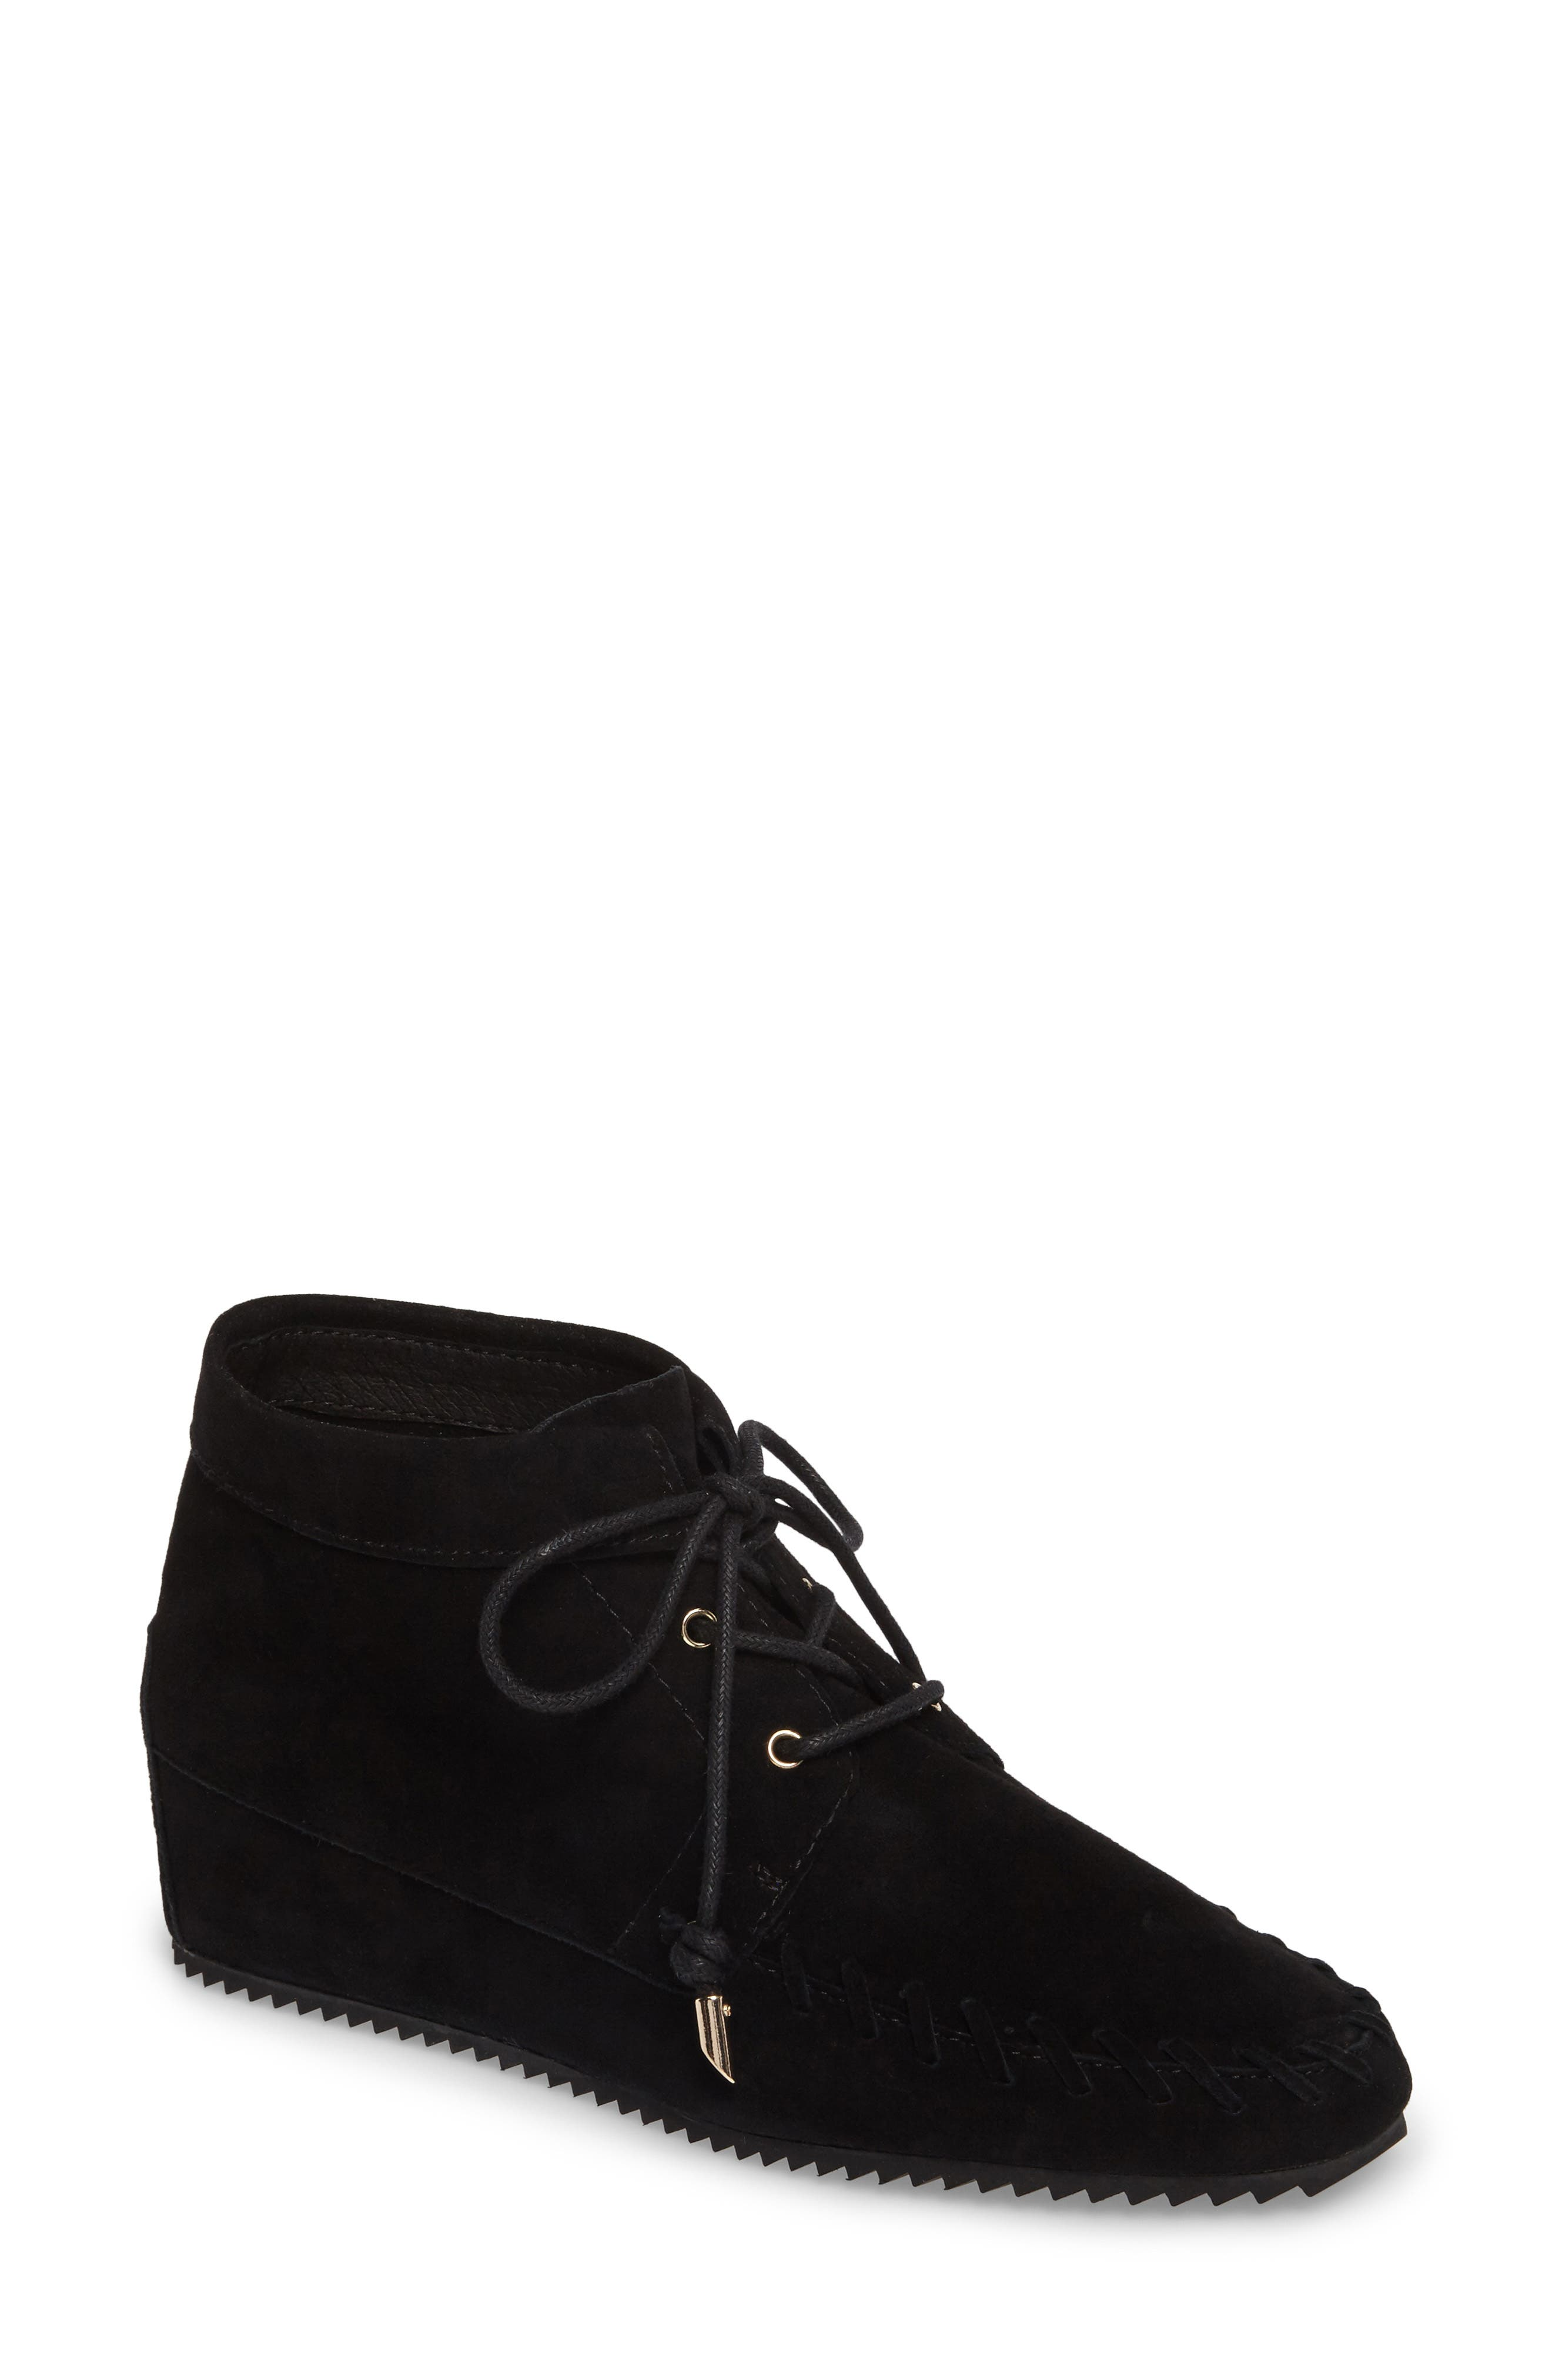 Alternate Image 1 Selected - Sudini Jenna Wedge Bootie (Women)